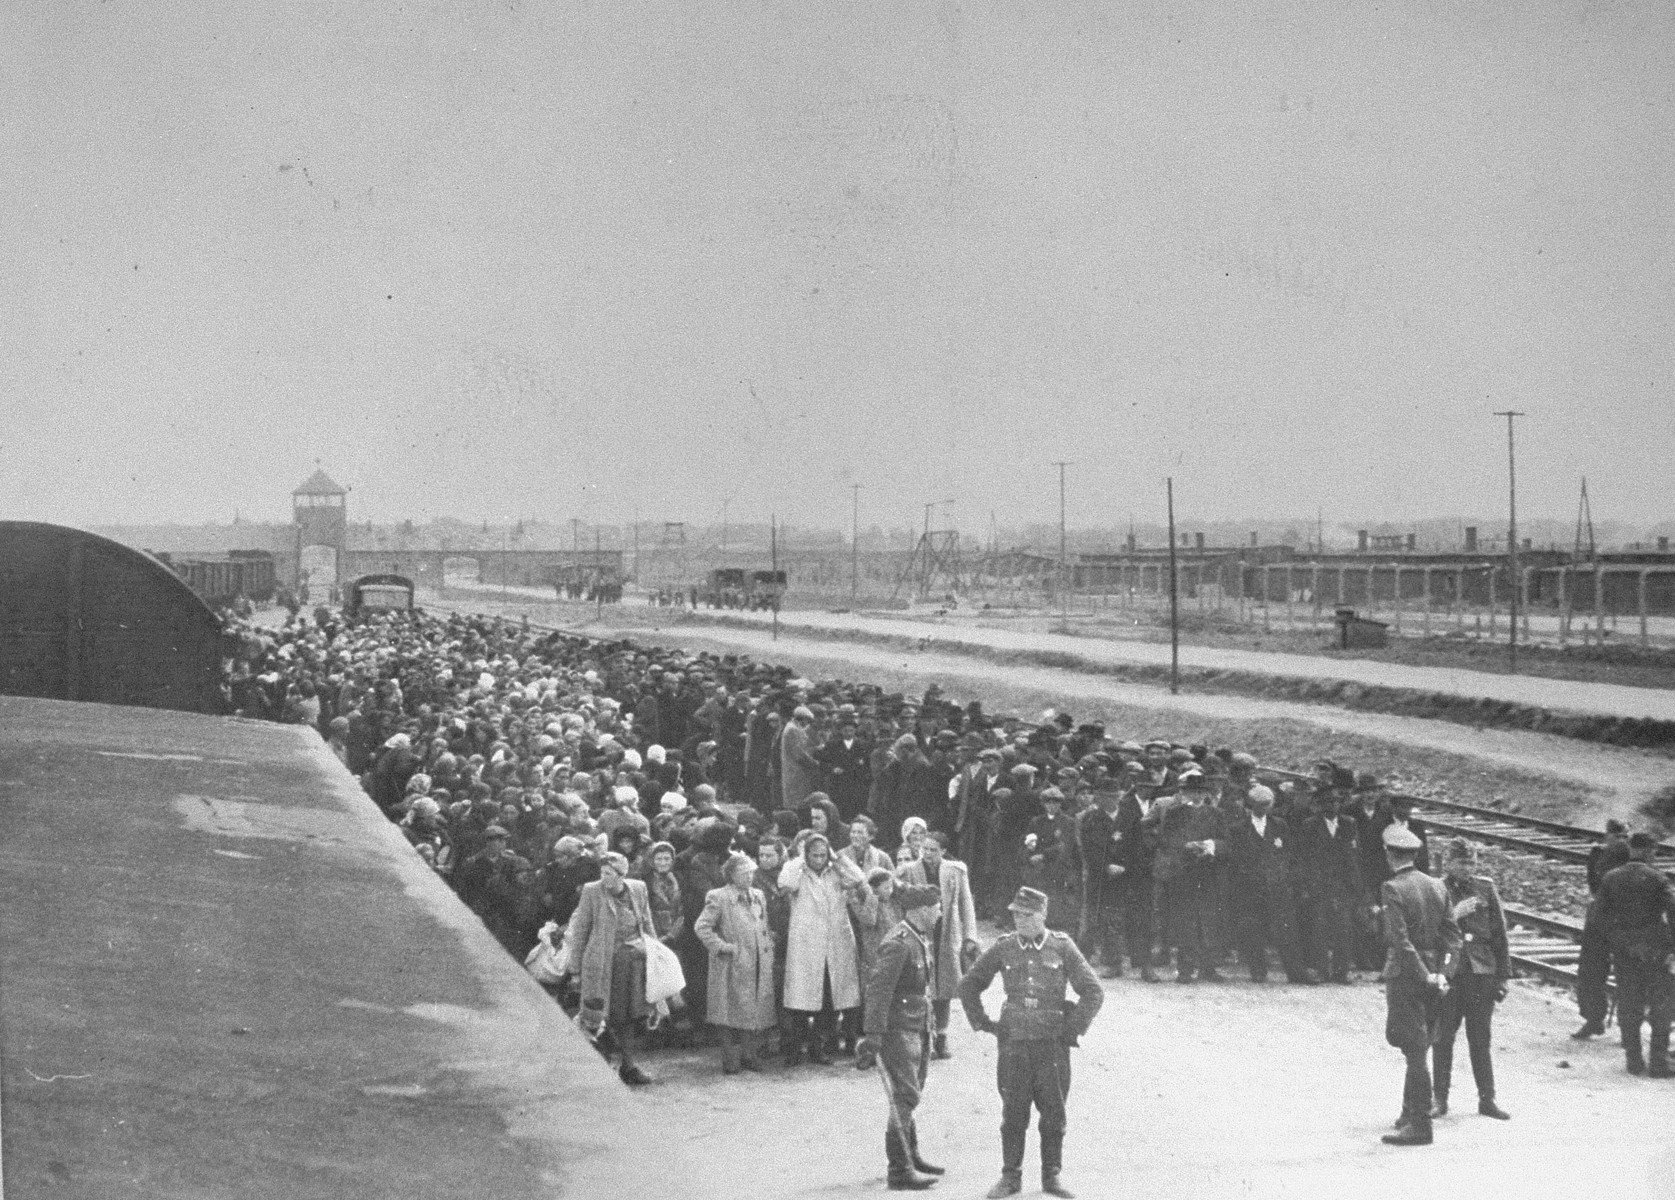 View from atop the train of Jews lined up for selection on the ramp at Auschwitz-Birkenau.  Rozi (nee Mueller) Bittman is standing in the front row, second from the left.  The SS officer in the center wearing a visor cap is Walter Schmidetzki.